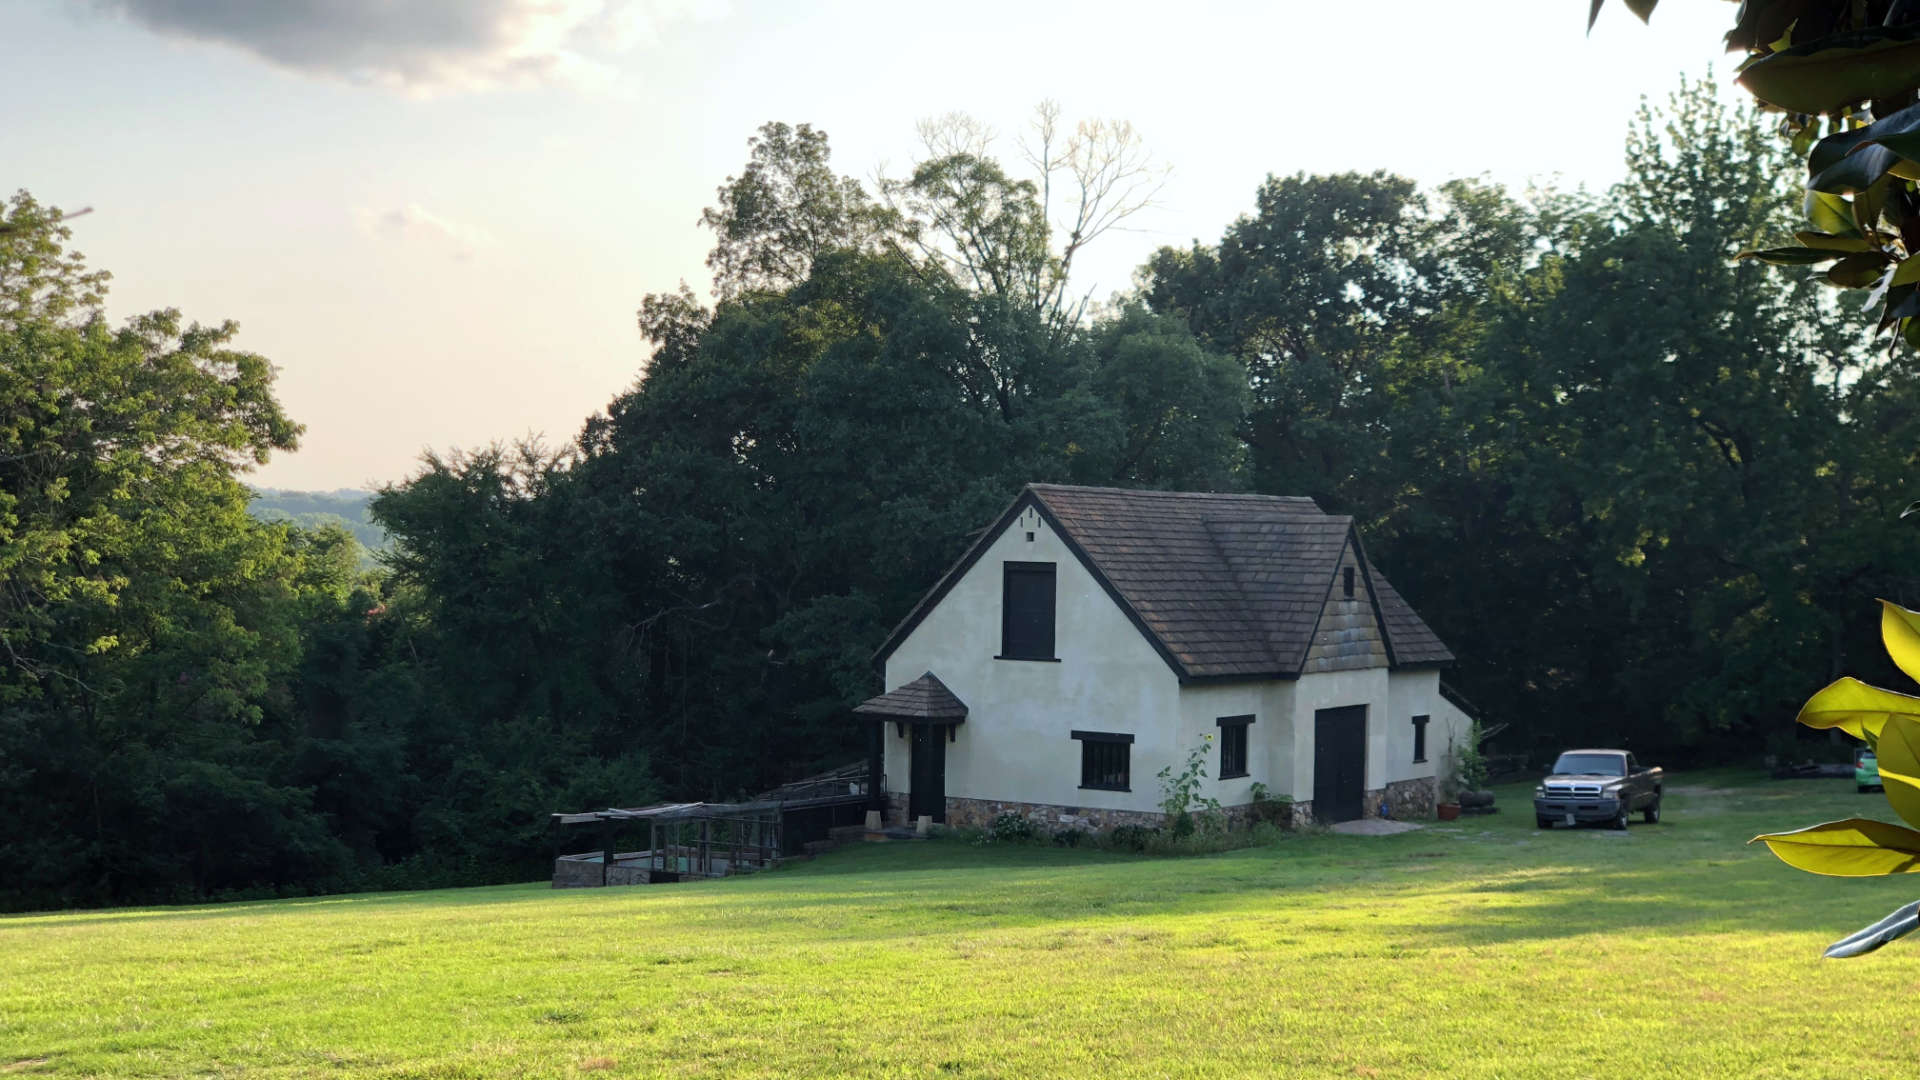 Exploring medieval England transported to Virginia overlooking the James RIver!